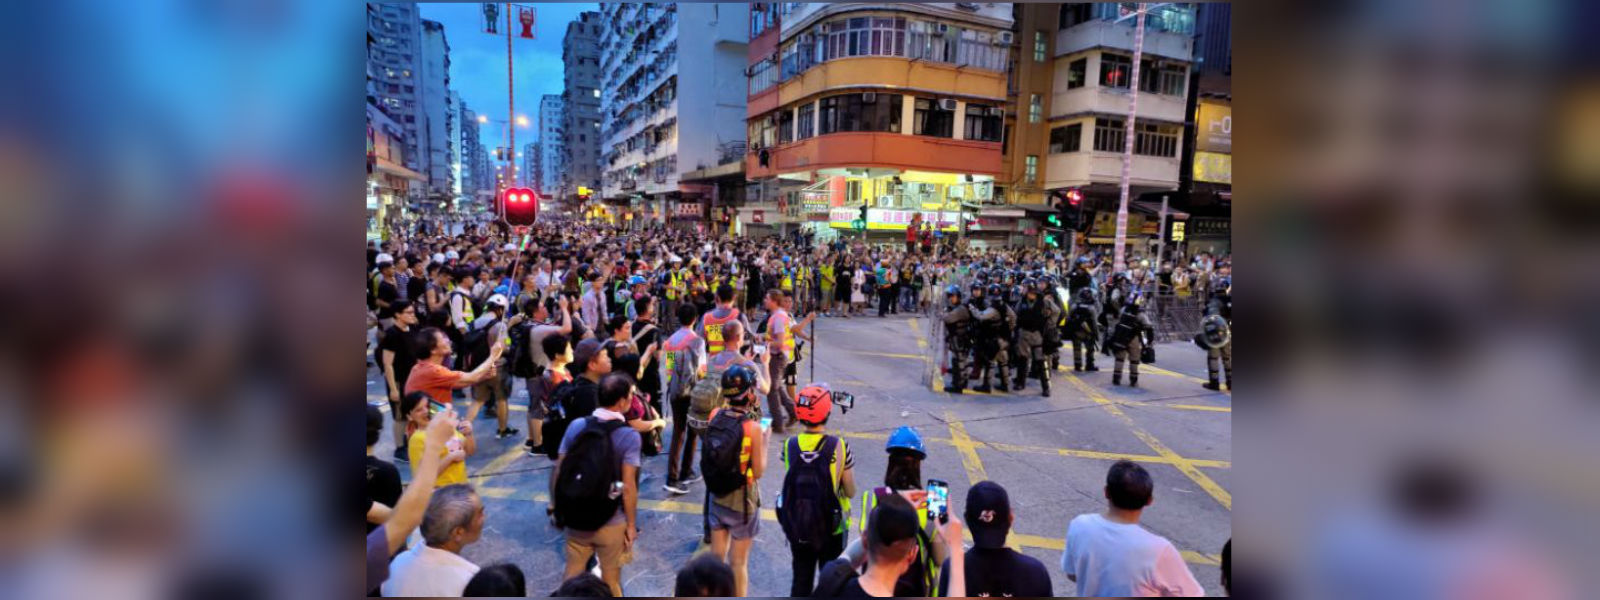 Shenzhen residents' views mixed over whether China will intervene in Hong Kong